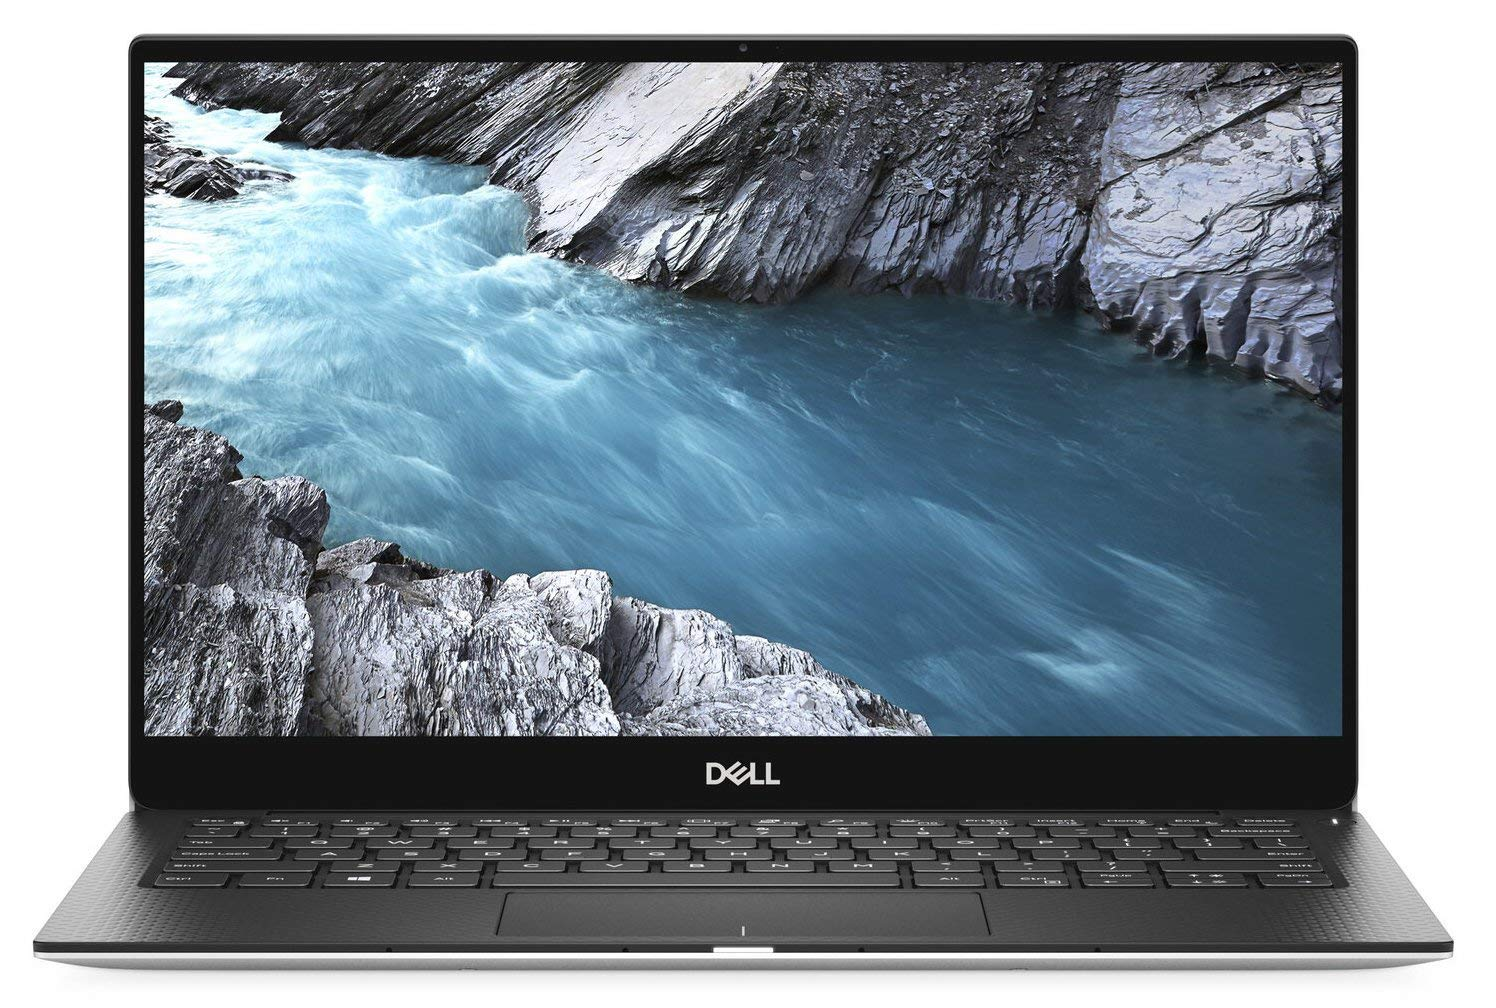 Ultrabook Dell XPS 13 9380 13.3 Ultra HD Touch Intel Core i7-8565U RAM 16GB SSD 1TB Windows 10 Pro Argintiu